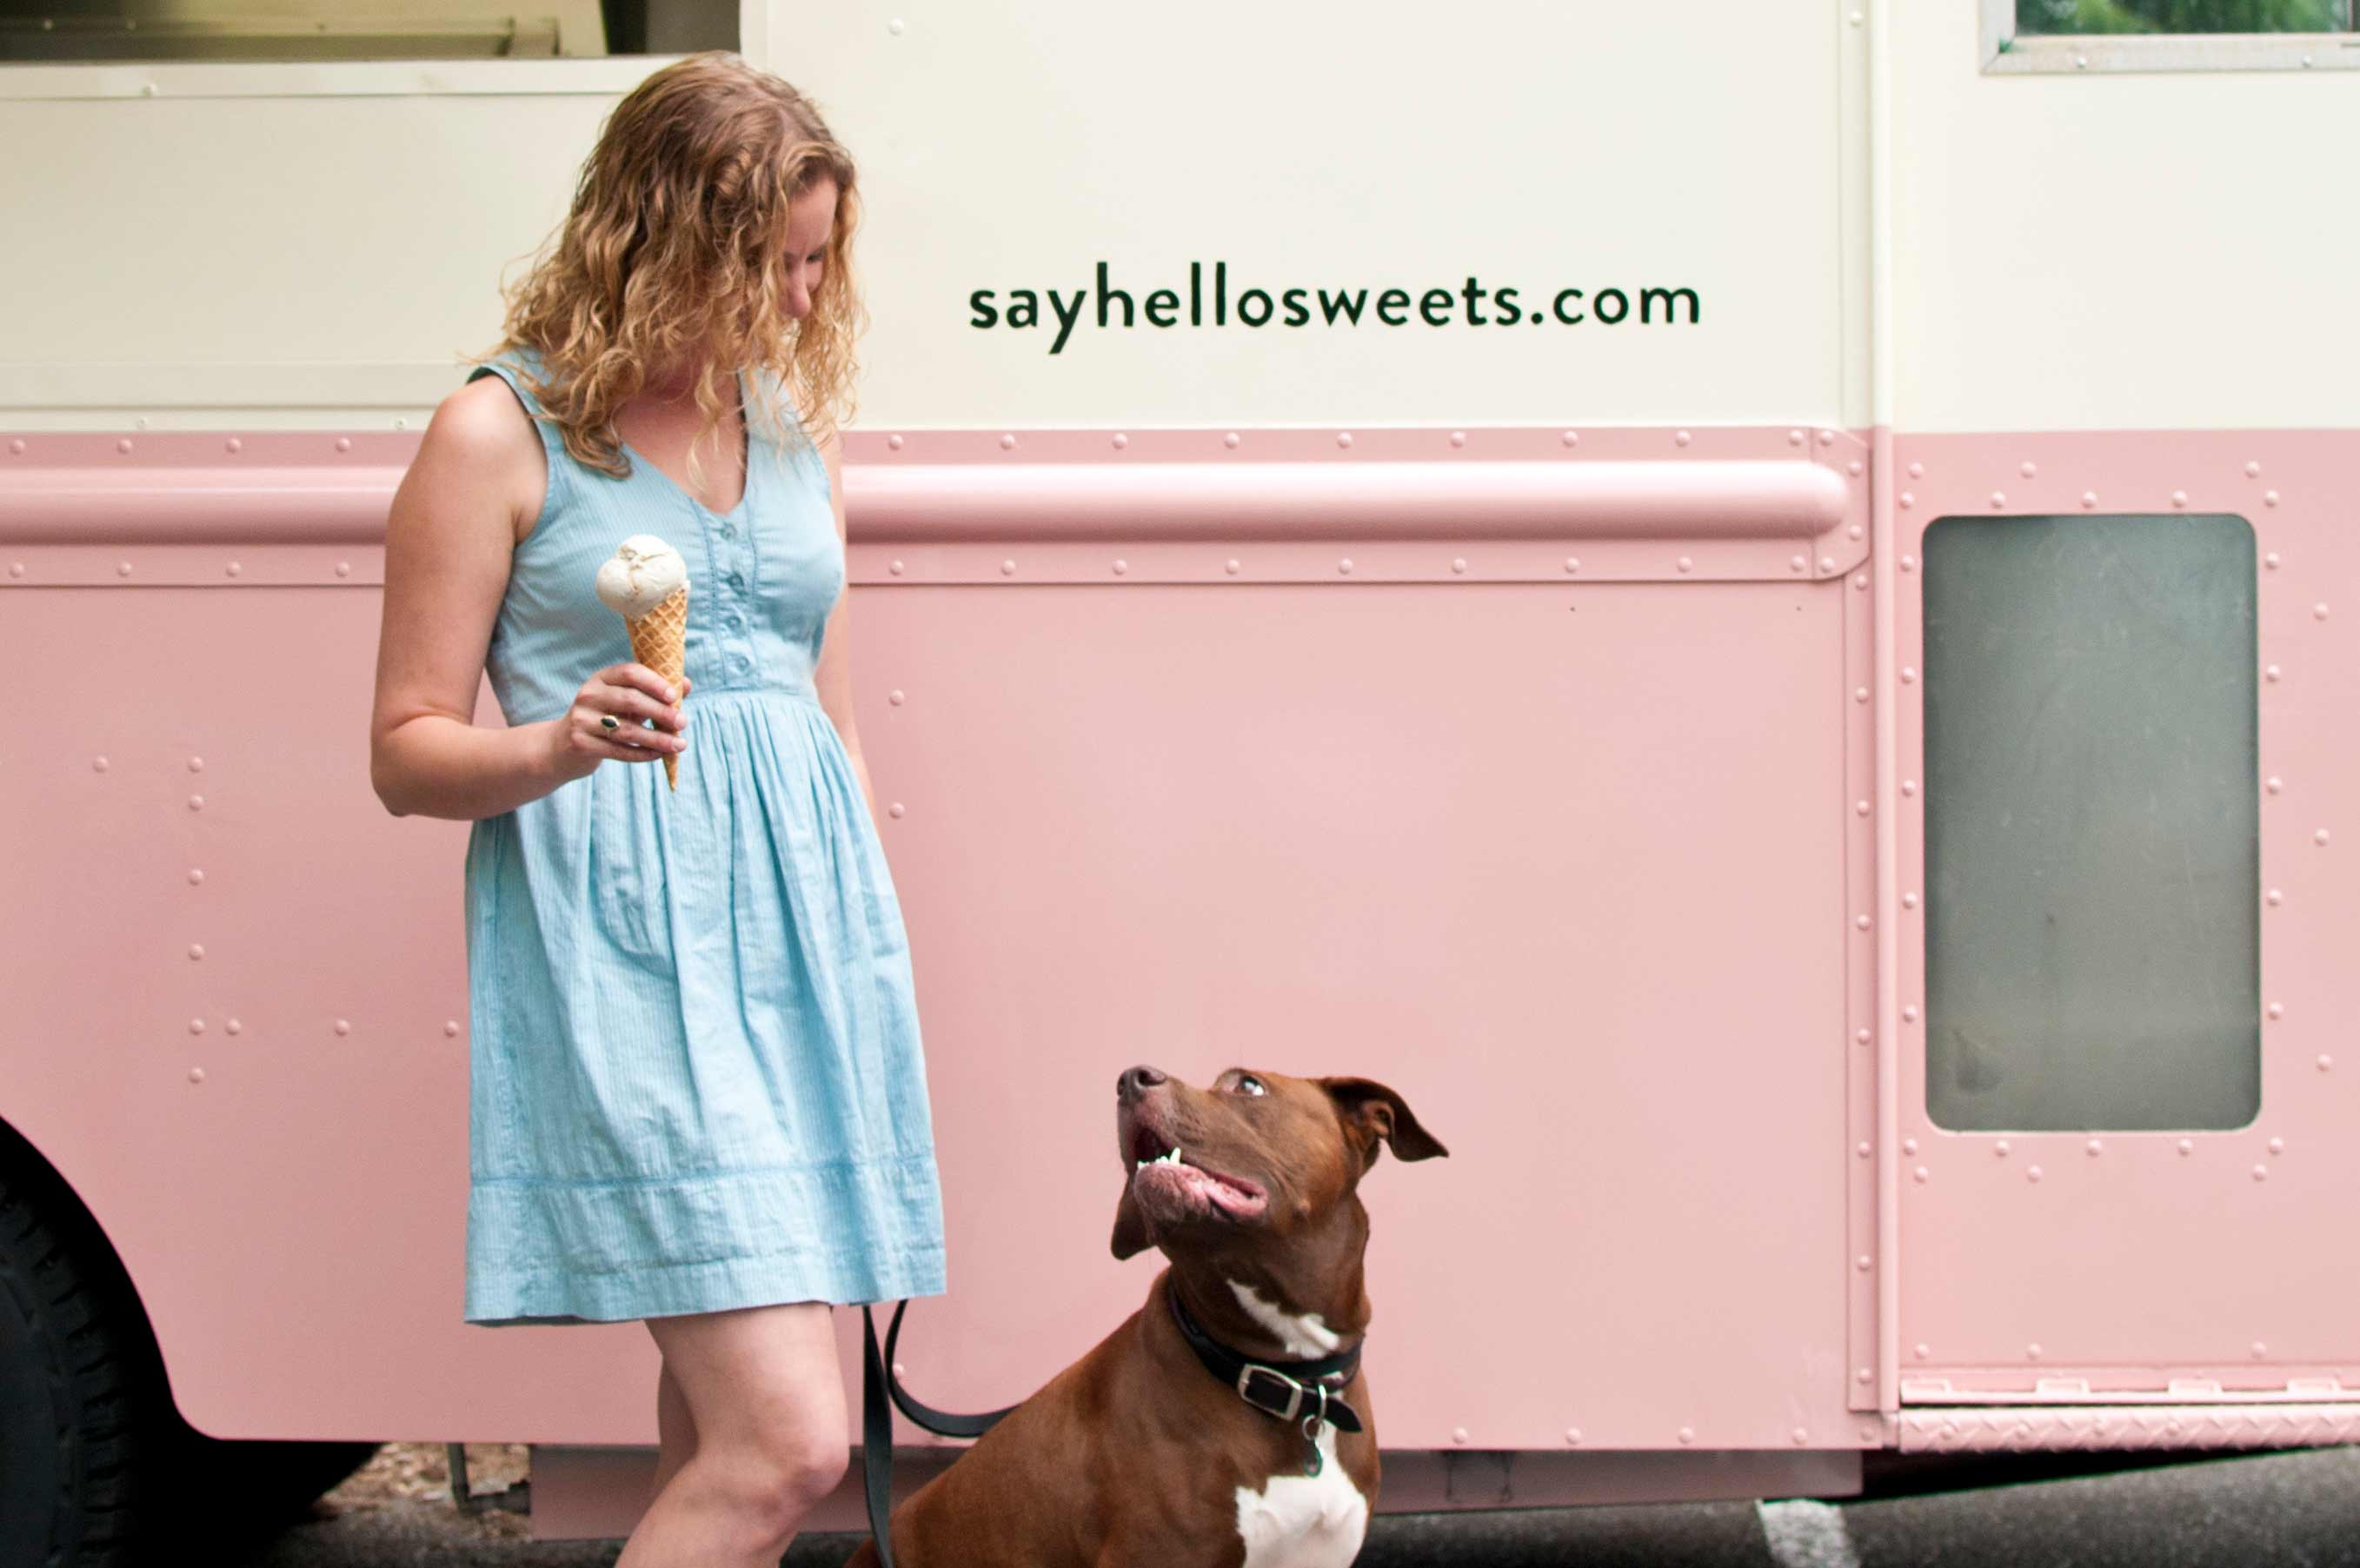 How Desperation Fuelled Inspiration for this Entrepreneur - Say Hello Sweets Owner with Dog